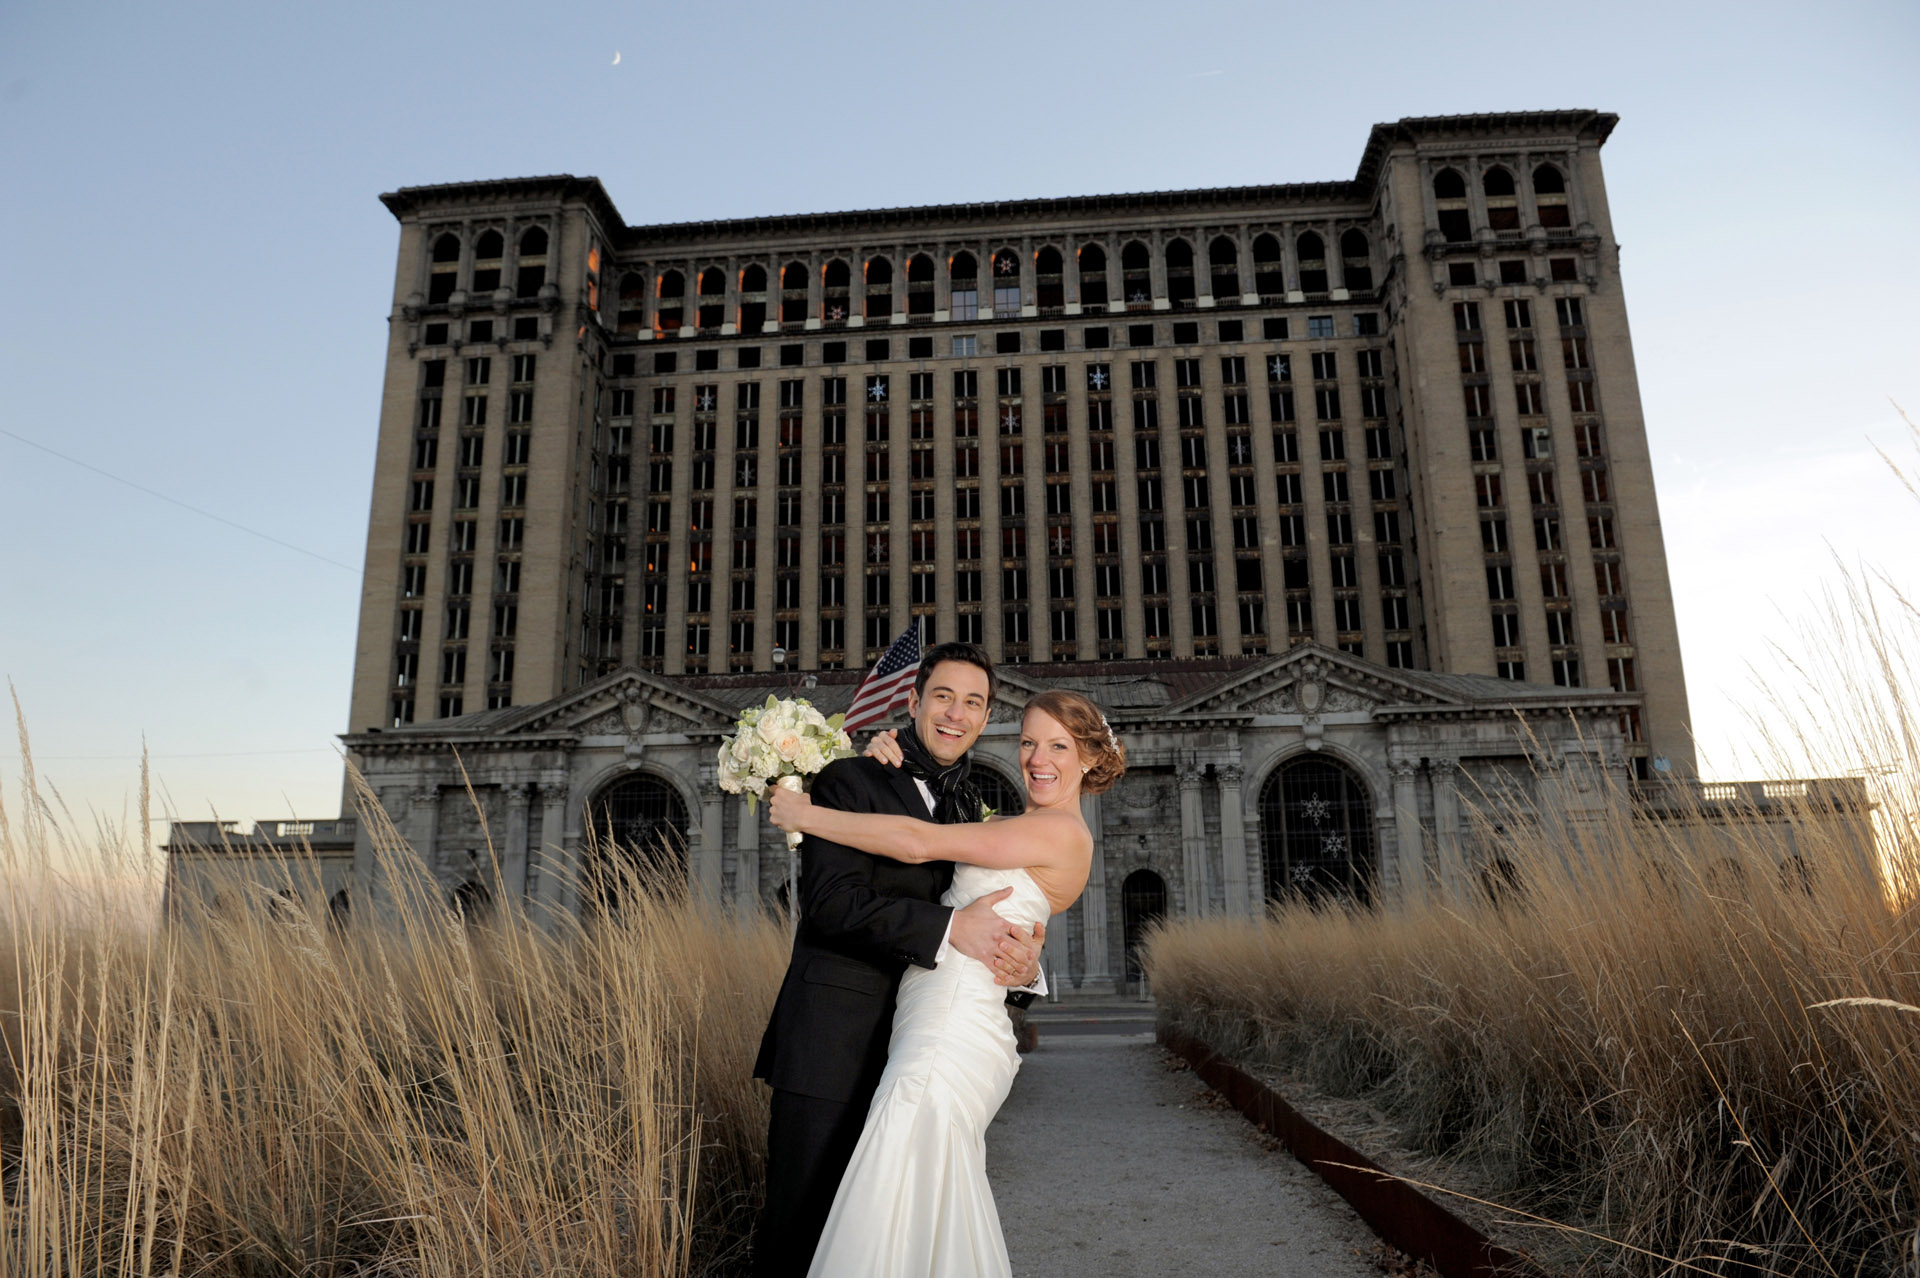 The Historic church Sweetest Heart of Mary and the Dearborn Inn of Detroit's historic church in Detroit and Dearborn, Michigan wedding photographer's photo of the the bride and groom at Detroit's historic train station for wedding photos in Detroit, Michigan.